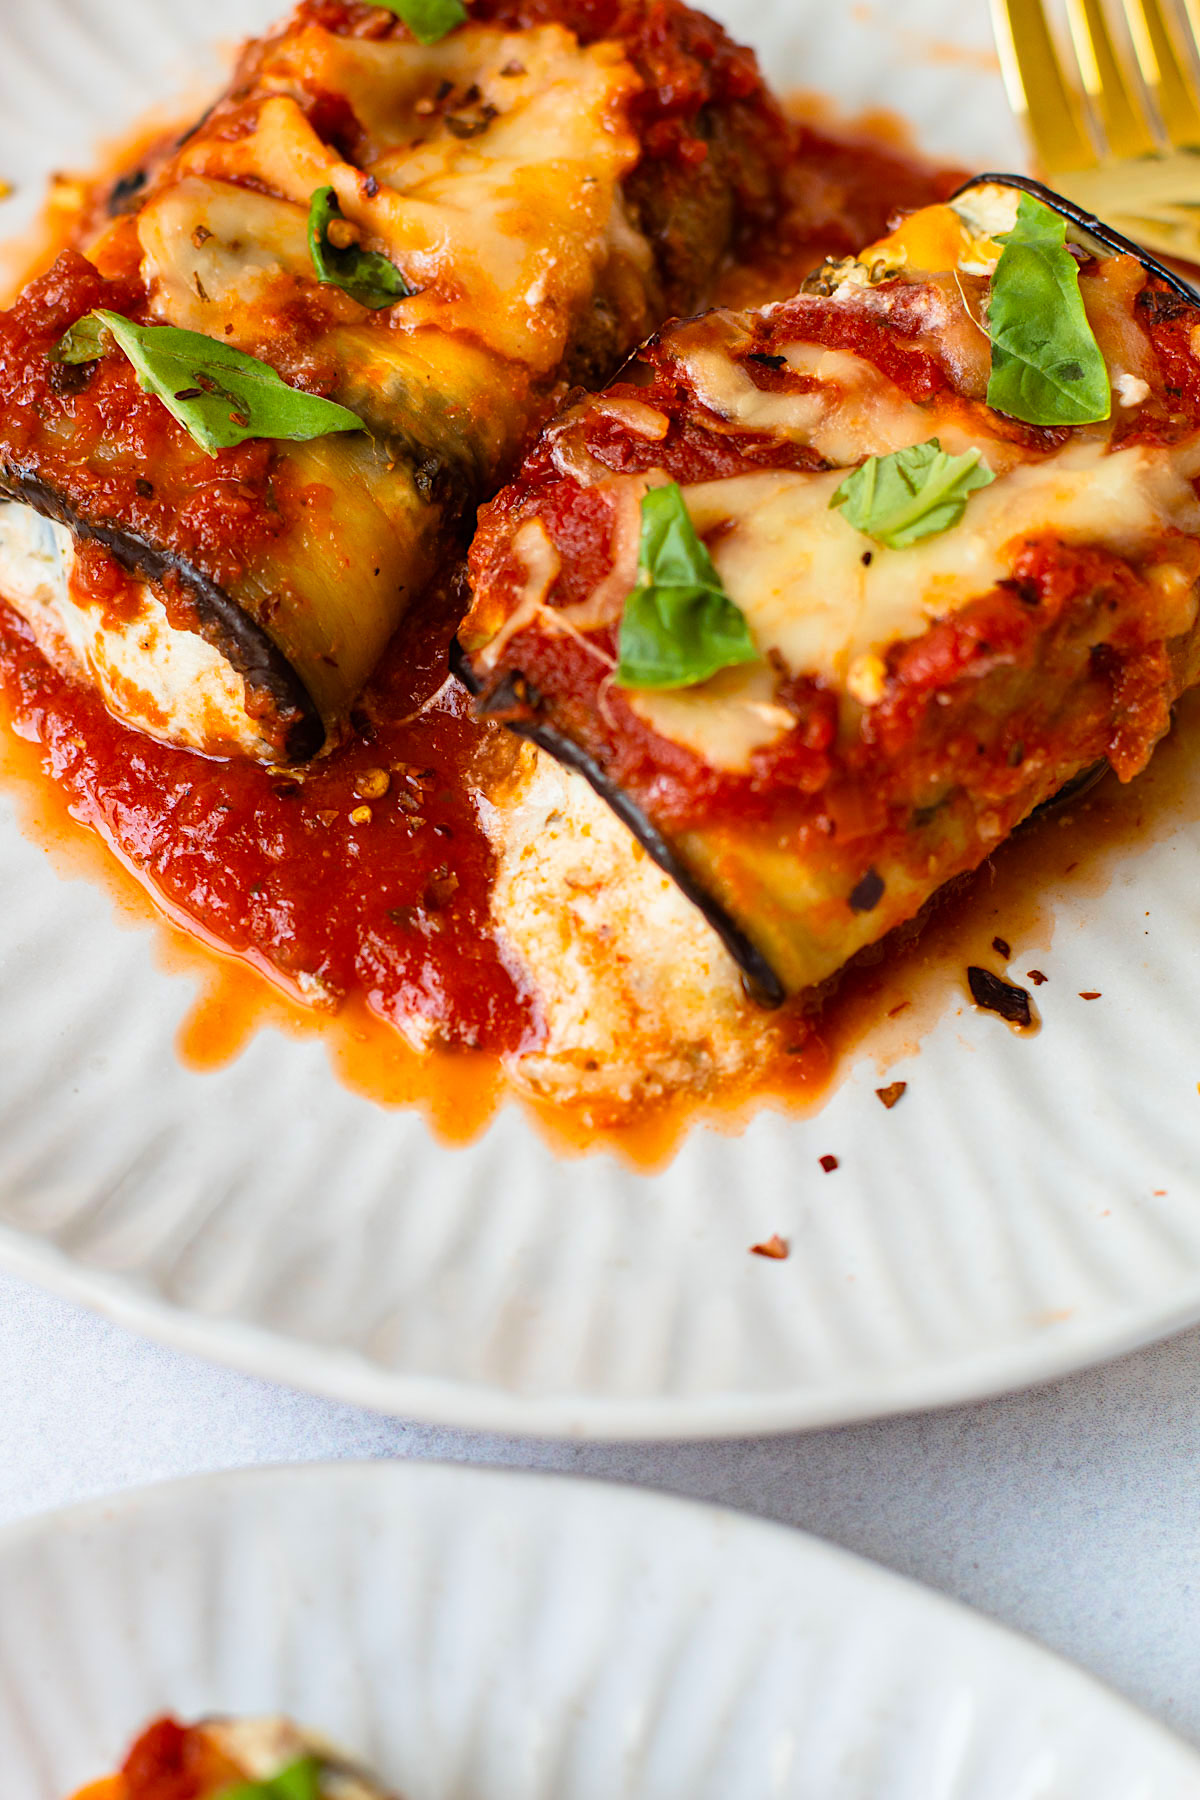 Eggplant rollatini on a plate.